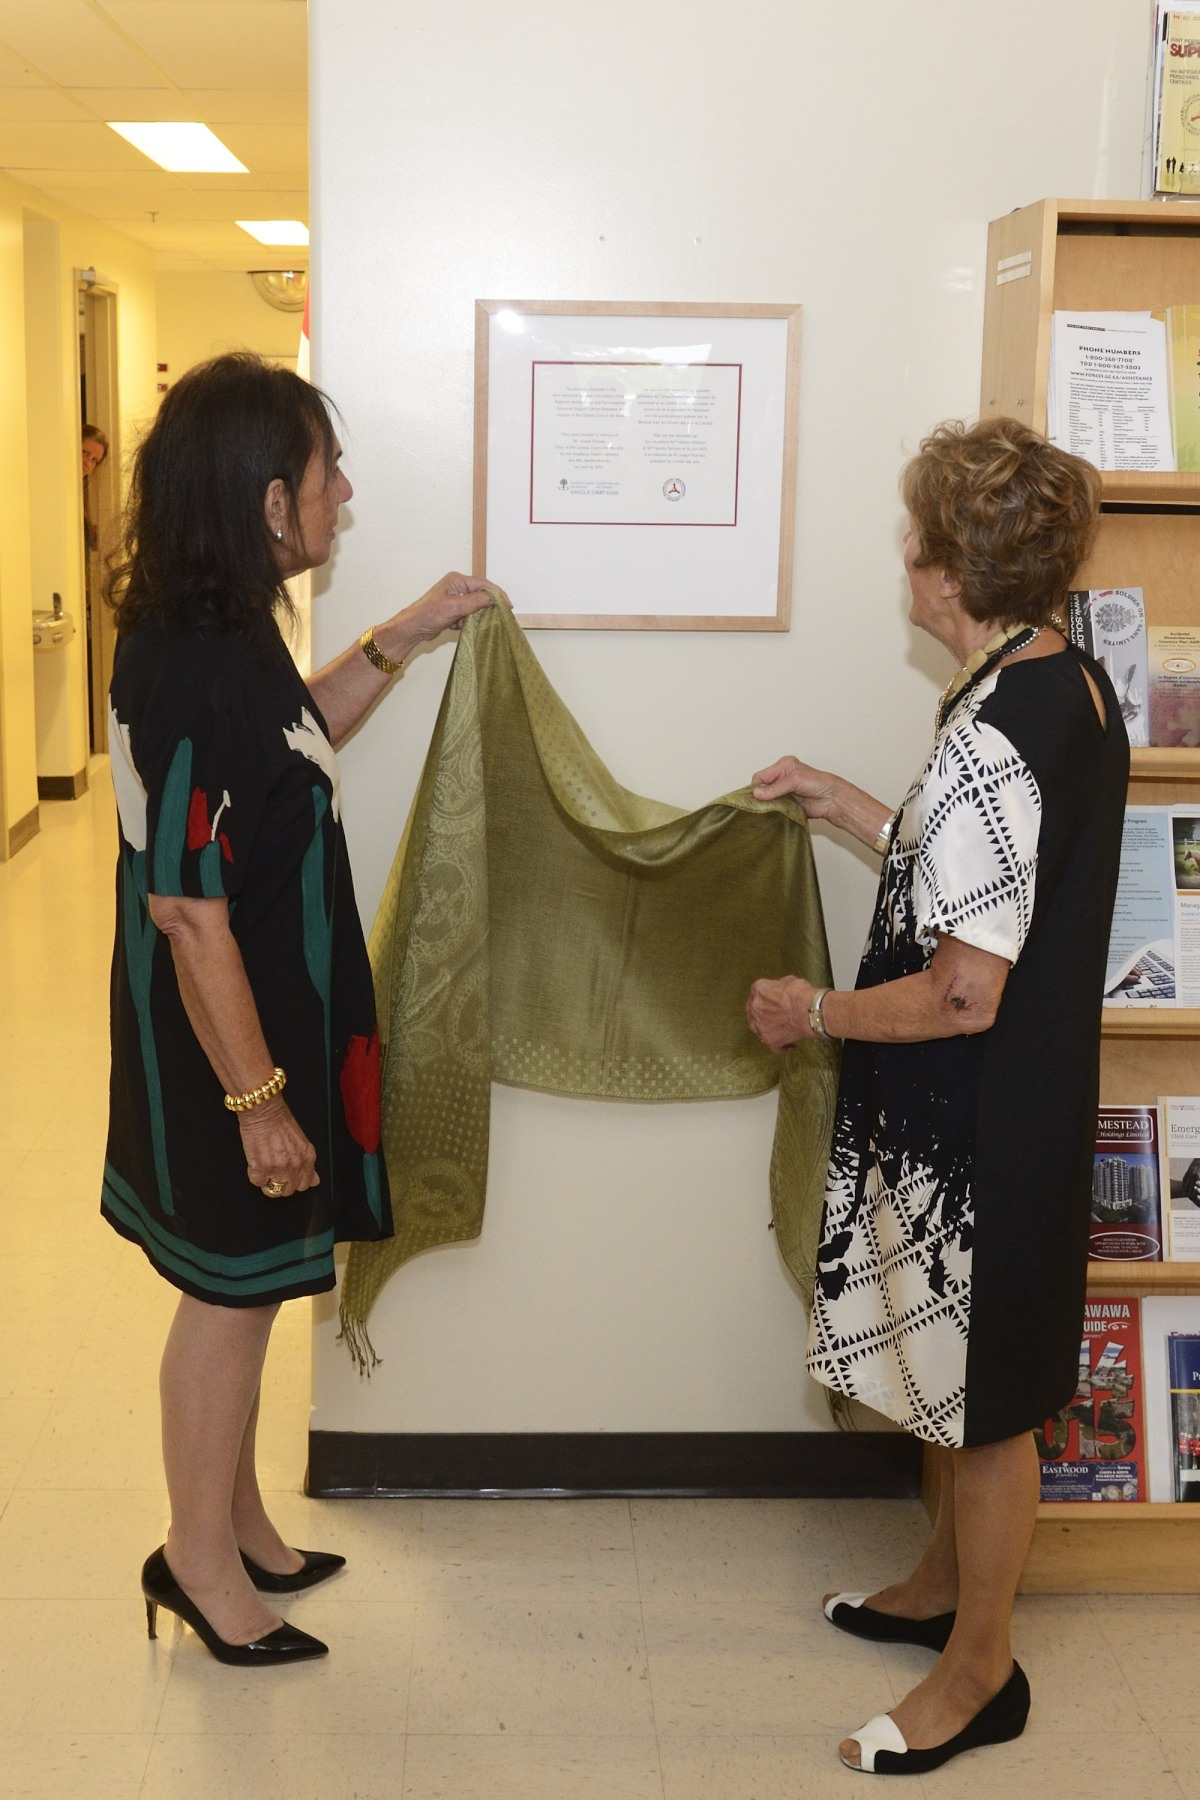 Joined by Mrs. Rotman, Mrs. Johnston unveiled the plaque. The artworks are installed in the Joint Personnel Support Unit Eastern Ontario Regional Headquarters and the Integrated Personnel Support Centre of Garrison Petawawa.